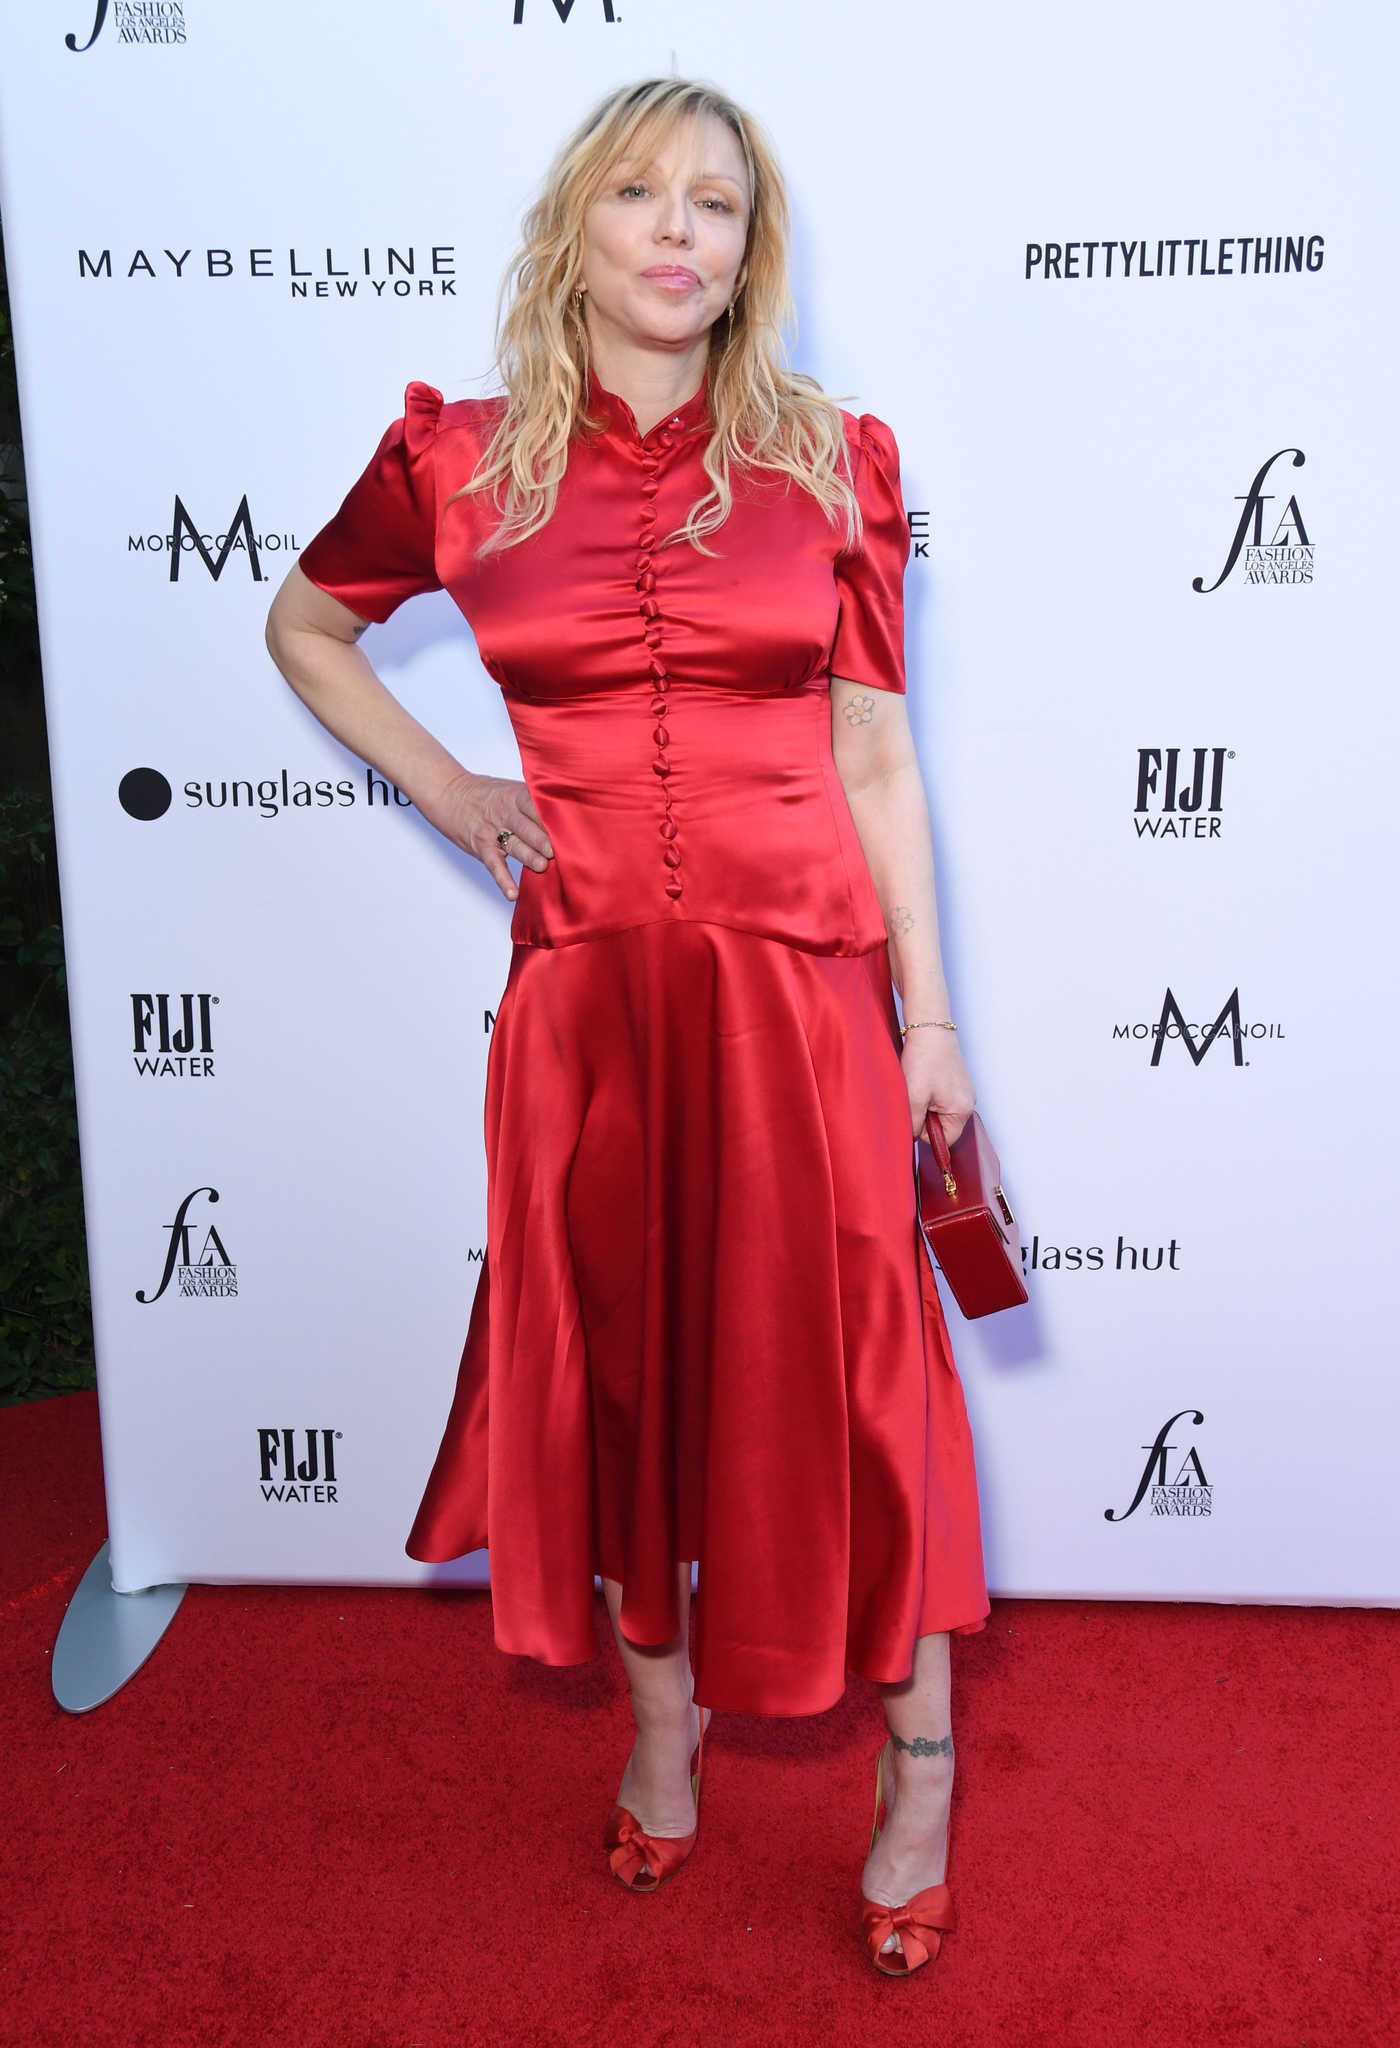 Courtney Love Attends The Daily Front Row Fashion Awards at The Beverly Hills Hotel in Los Angeles 03/17/2019